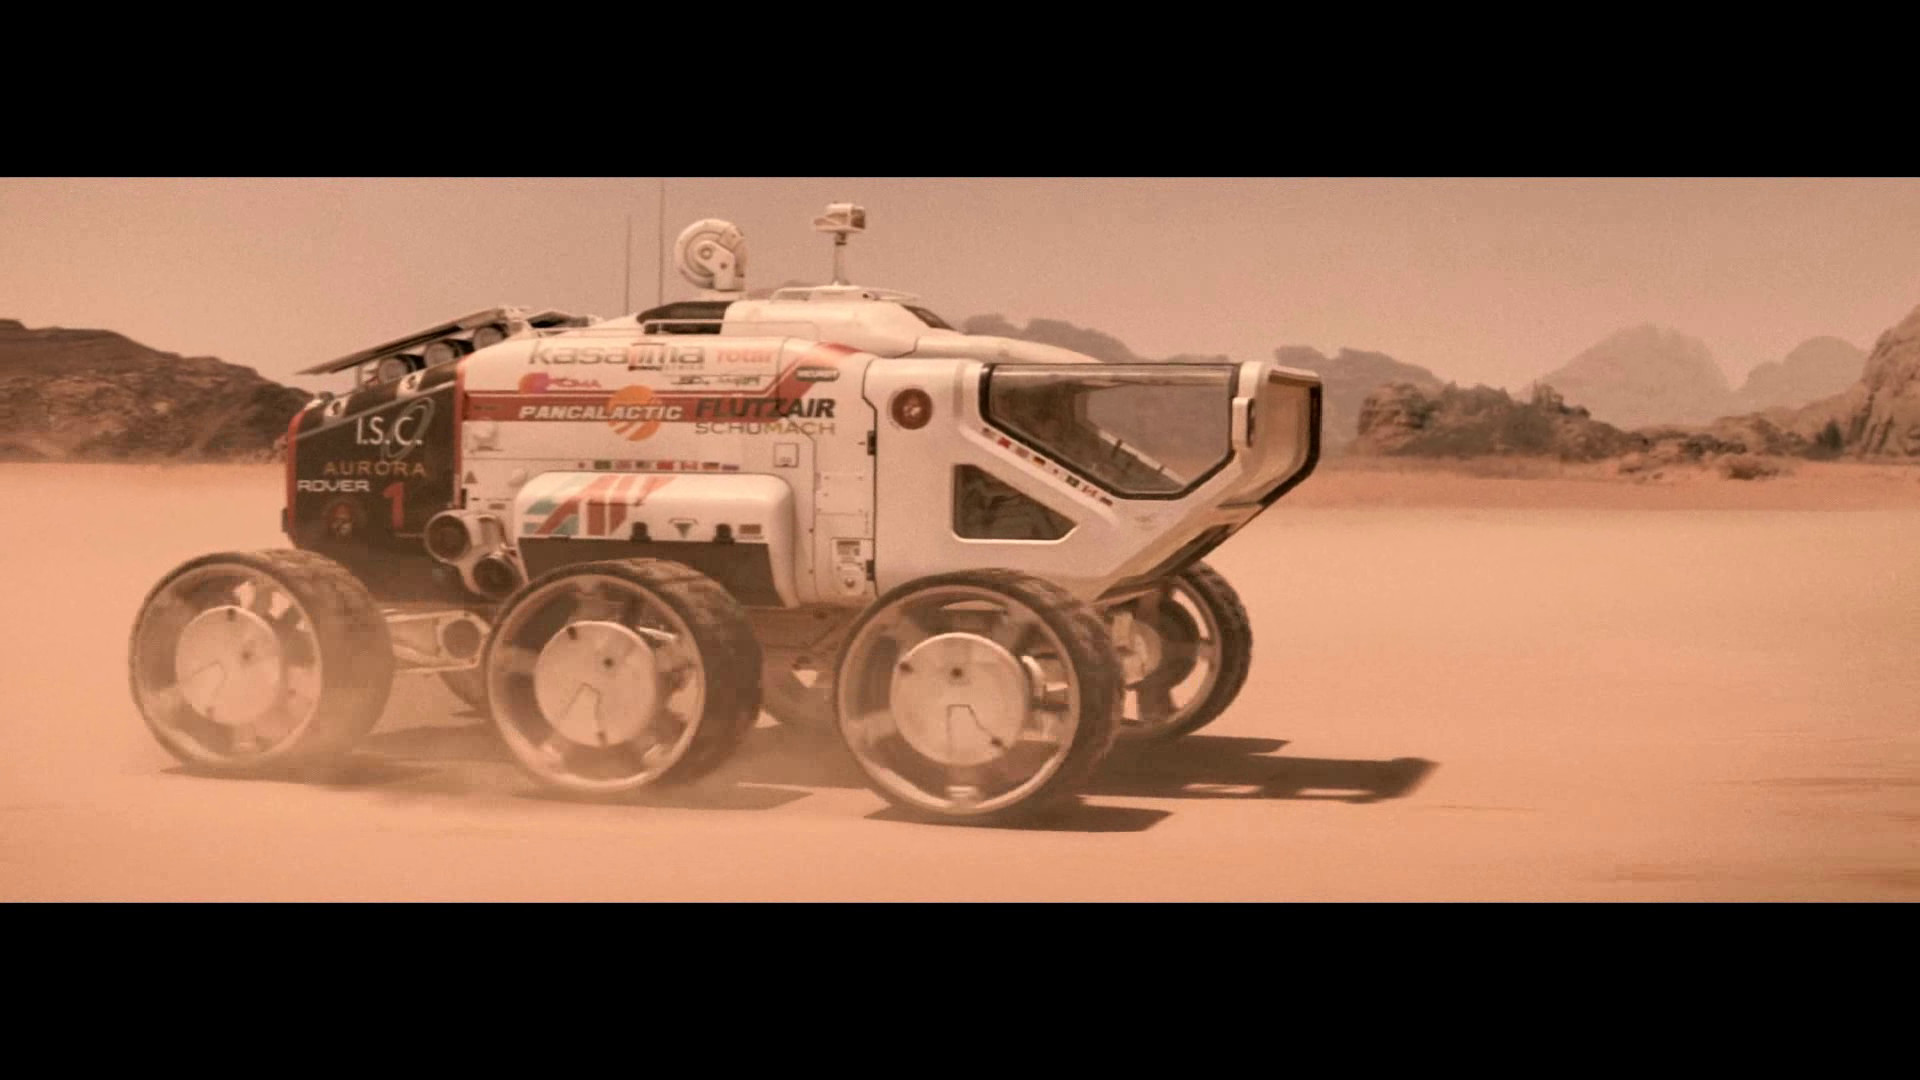 The rover from the film Last days on Mars I was 3d supervisor on